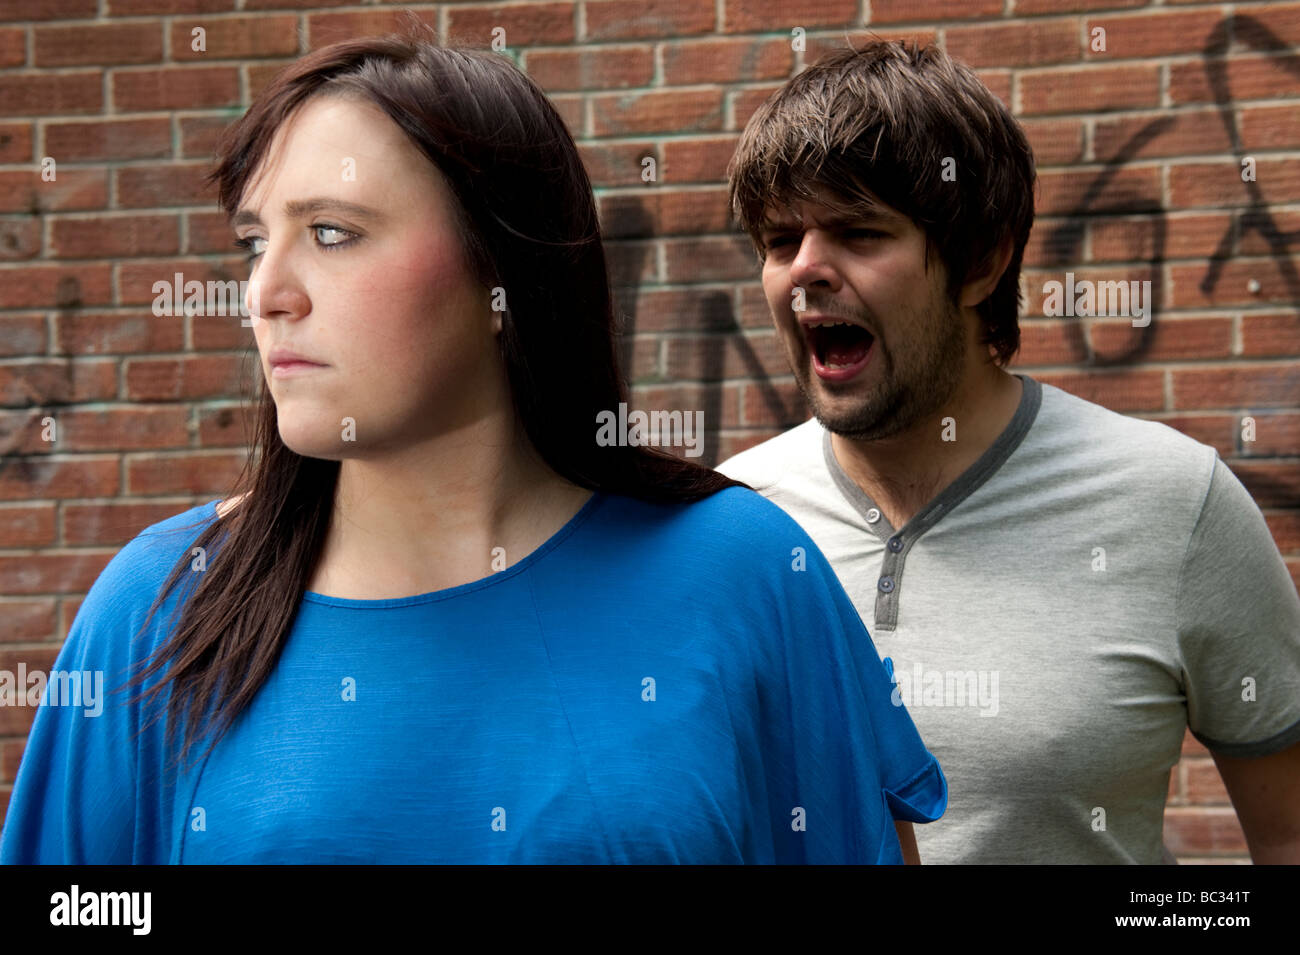 A Young couple arguing shouting relationship breakdown - boy yelling at his girlfriend who is ignoring him - Stock Image